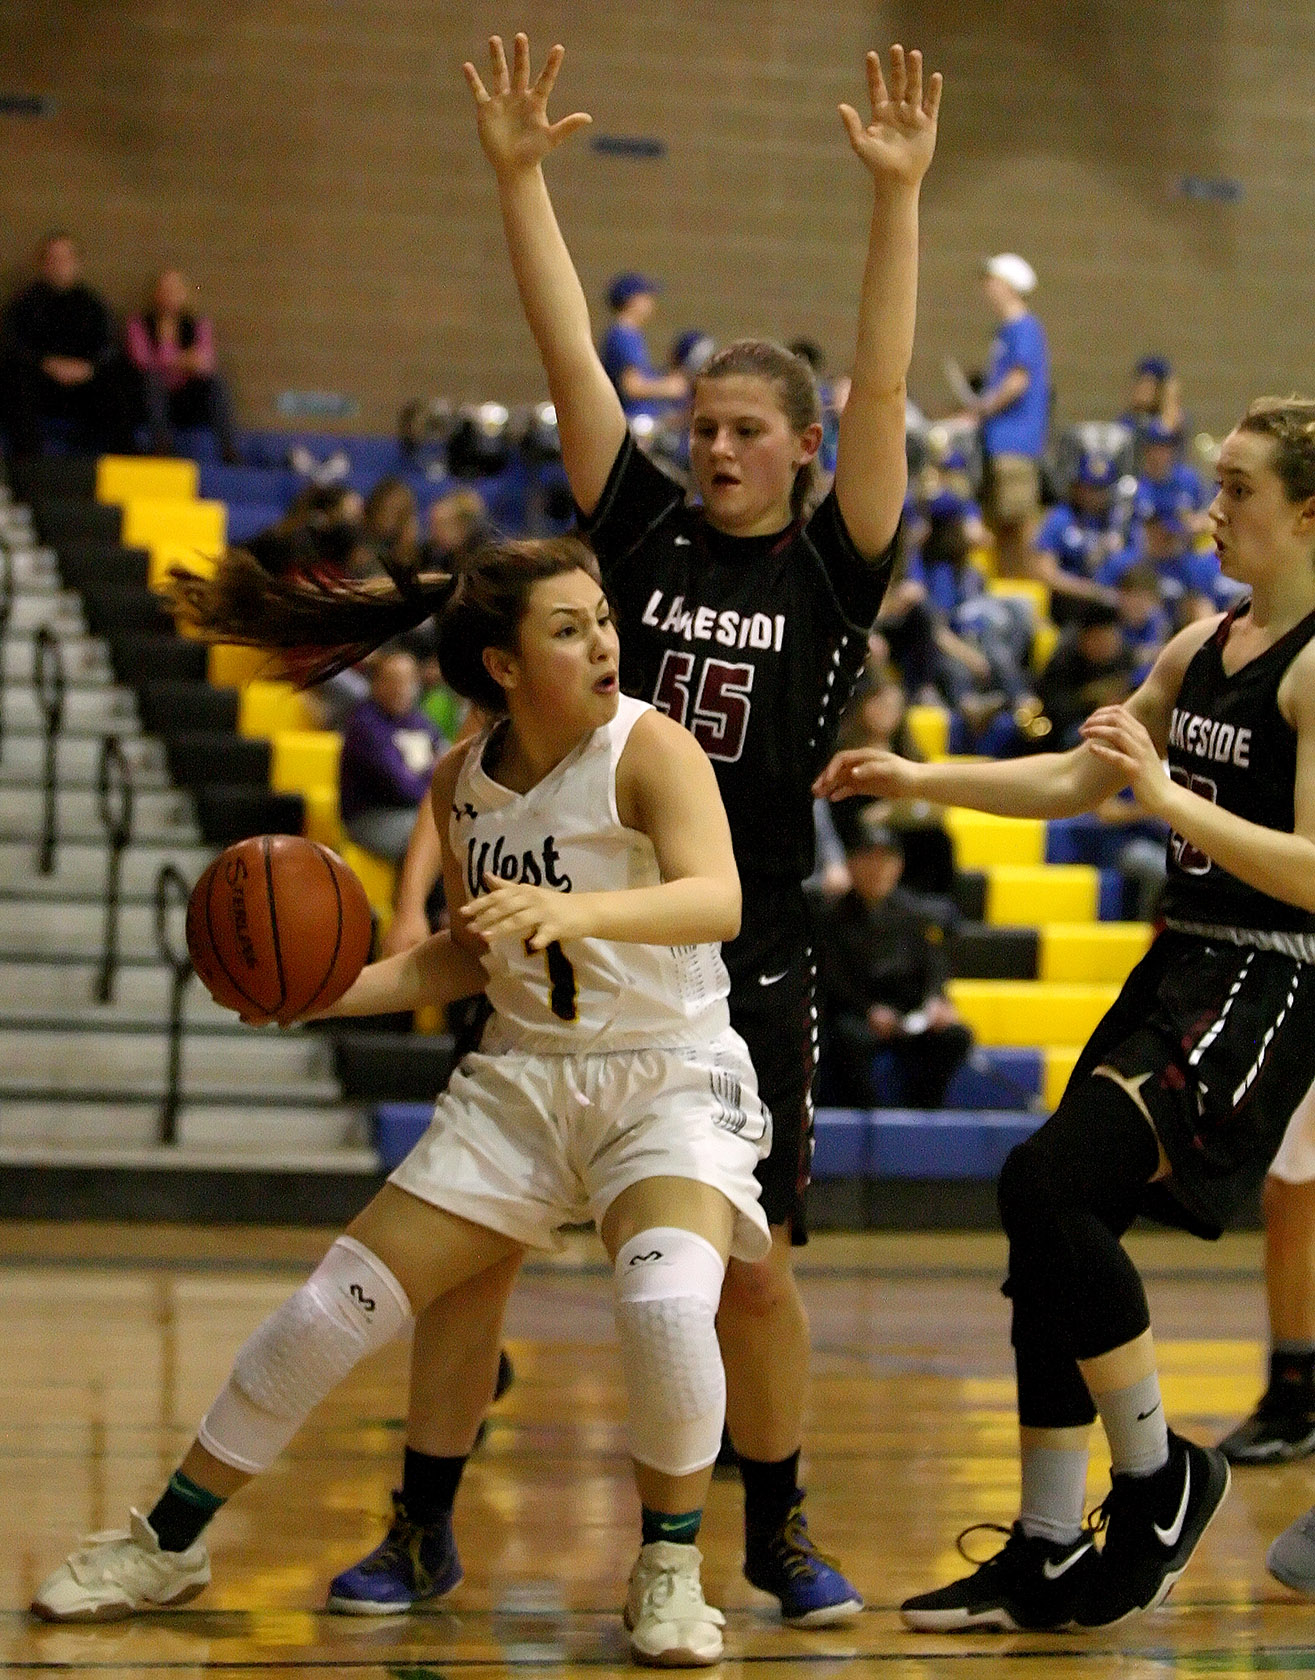 Kaiya Mar of West Seattle finds herself trapped under the basket looking to pass.